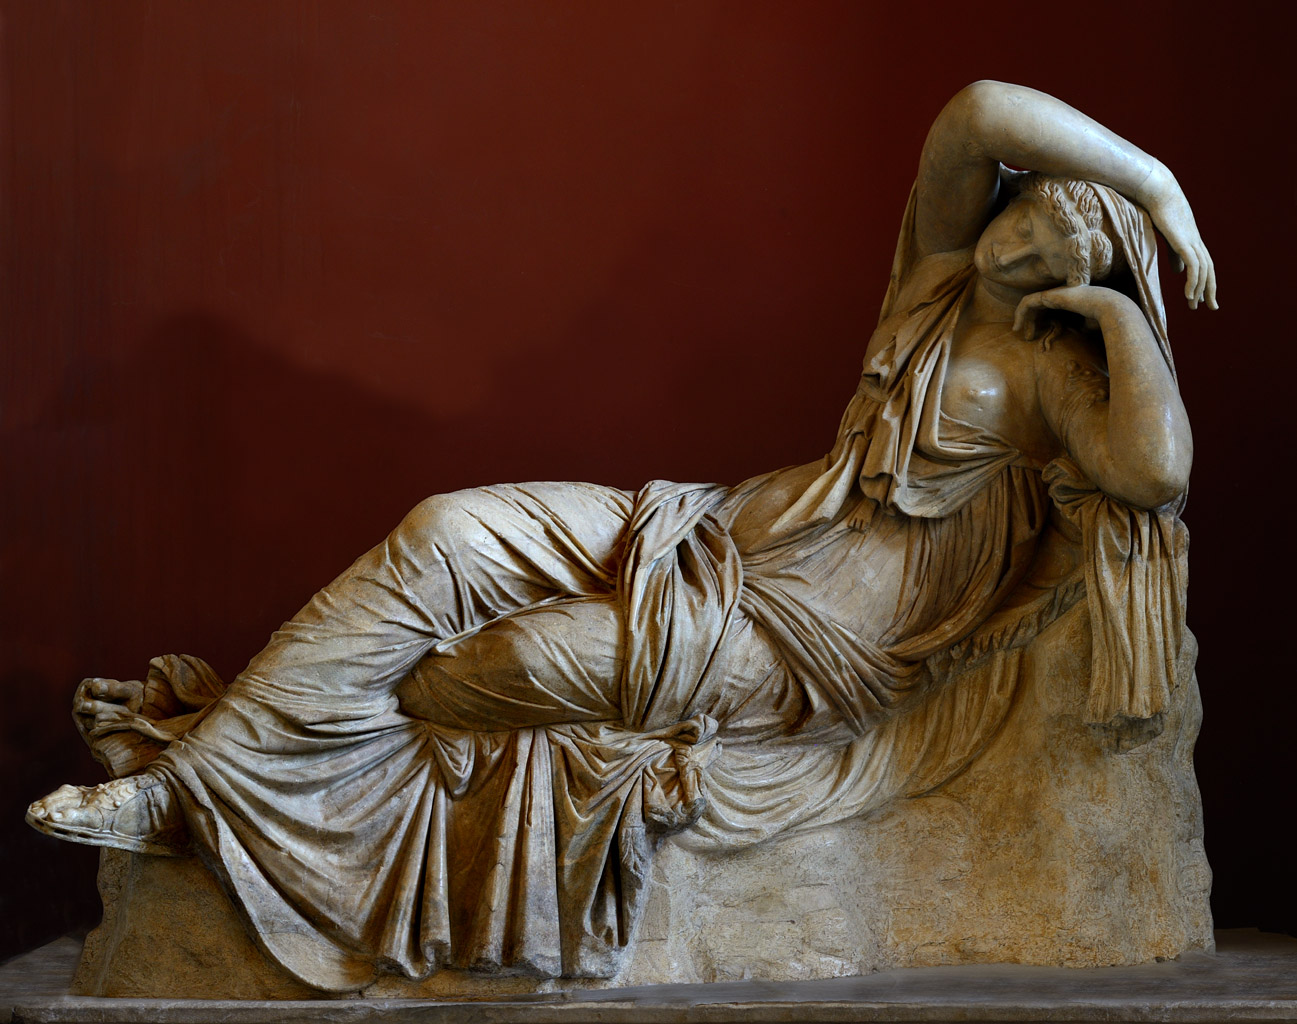 Sleeping Ariadne. Phrygian marble. Roman copy after a model by the Pergamon school of the early 2nd century BCE. Inv. No. 548. Rome, Vatican Museums, Pius-Clementine Museum, Gallery of statues, 11